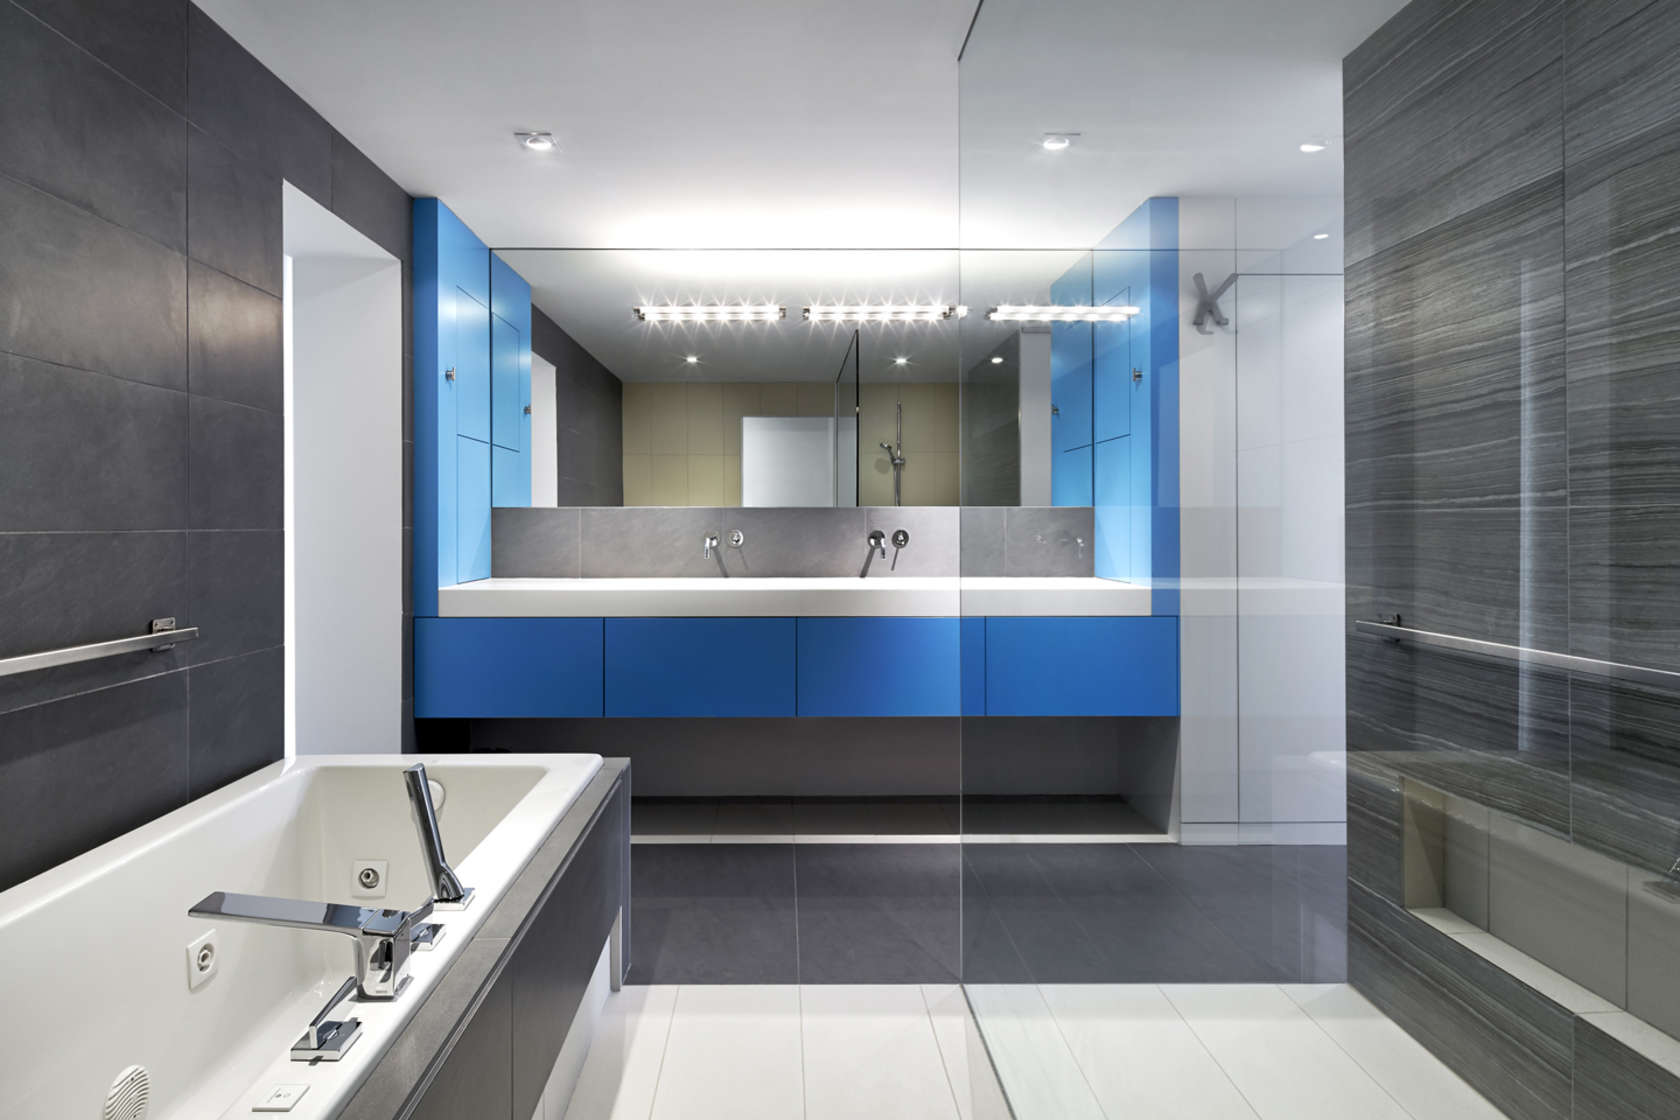 Modern luxury bathroom interior design ideas for Modern interior bathroom